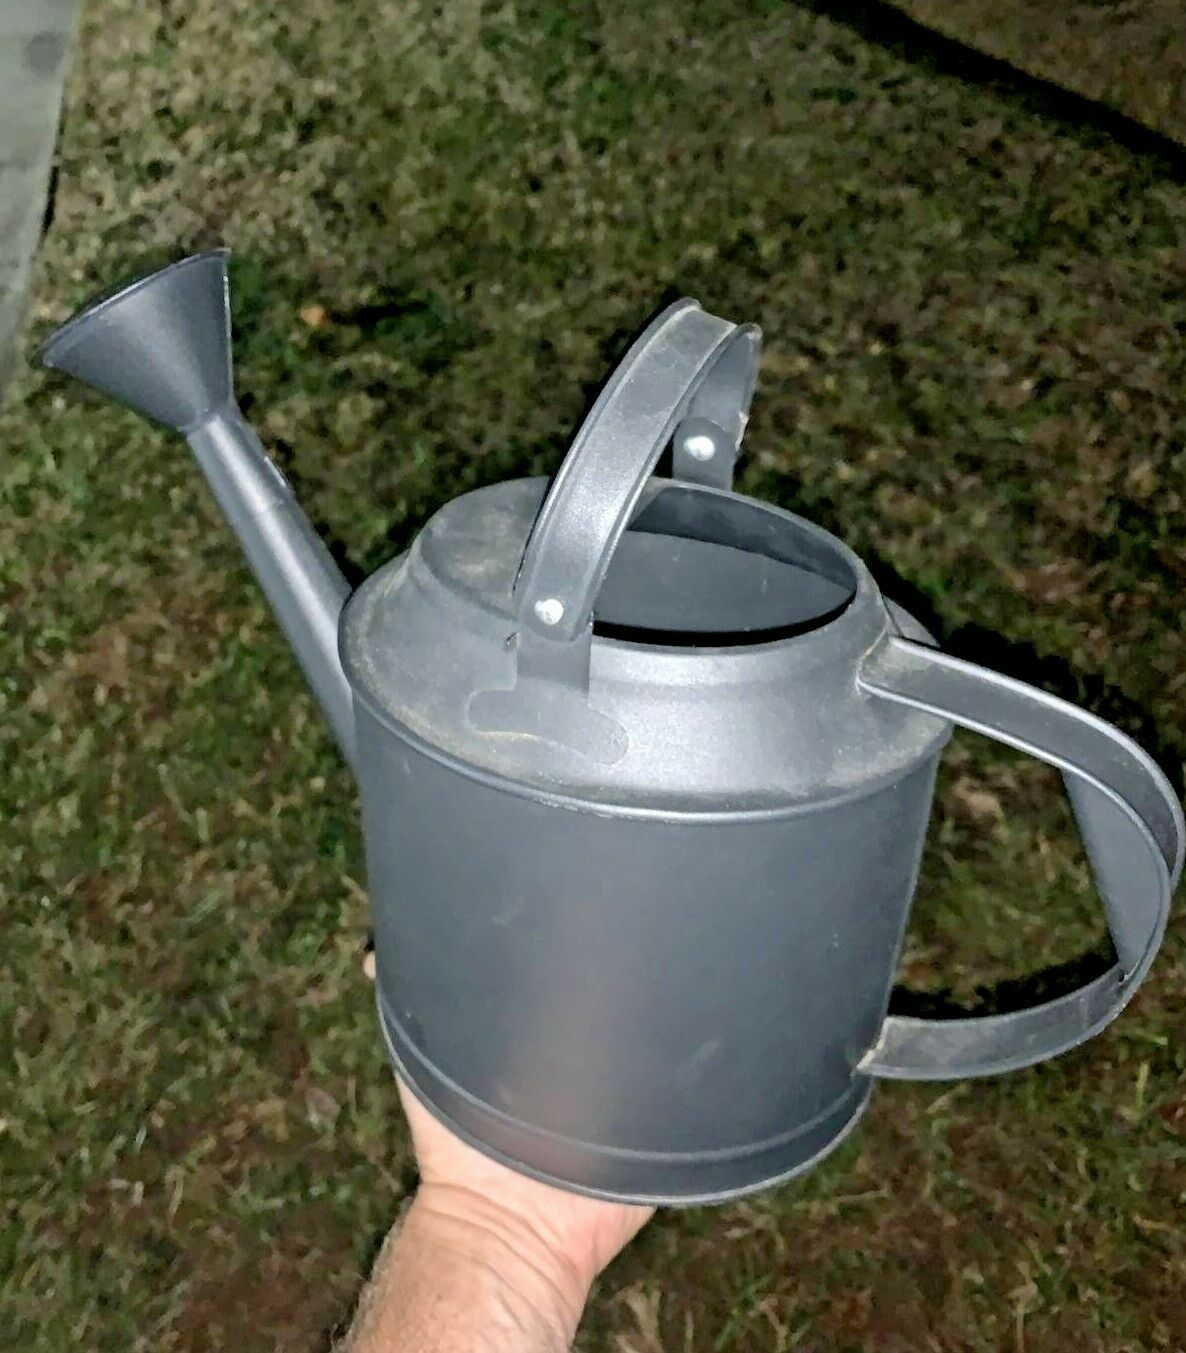 Vintage IKEA Watering Can Black Metal NEW with TAGS House Garden 11/17 ❤️sj11h1s